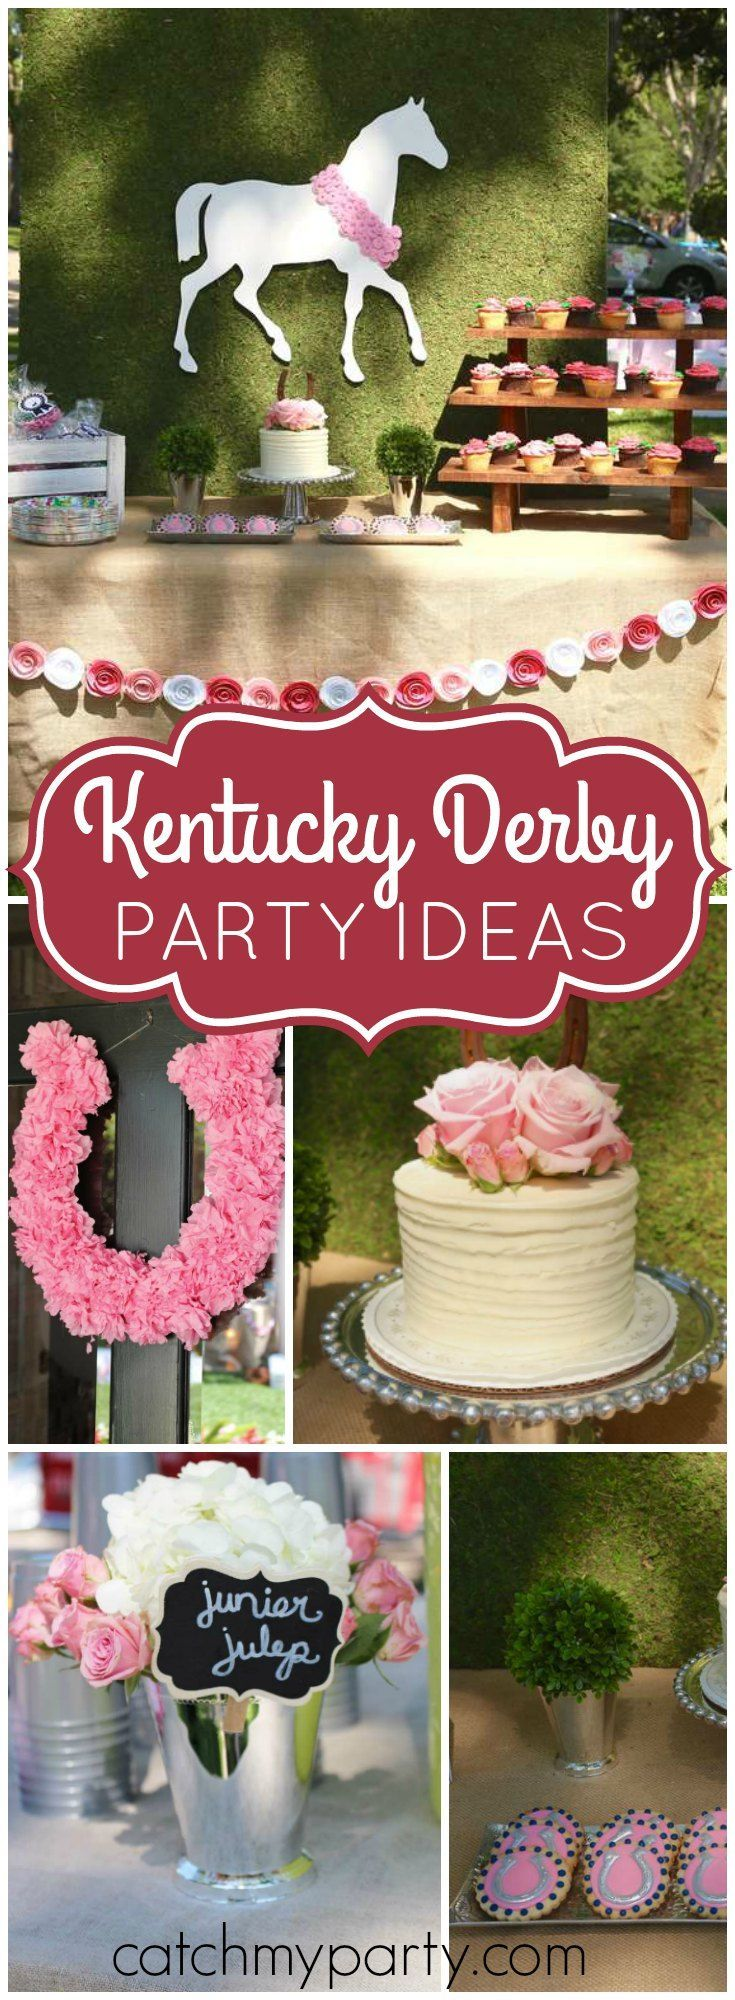 Kentucky Derby Birthday Claires Big Kentucky Derby Nd - Children's birthday parties derbyshire